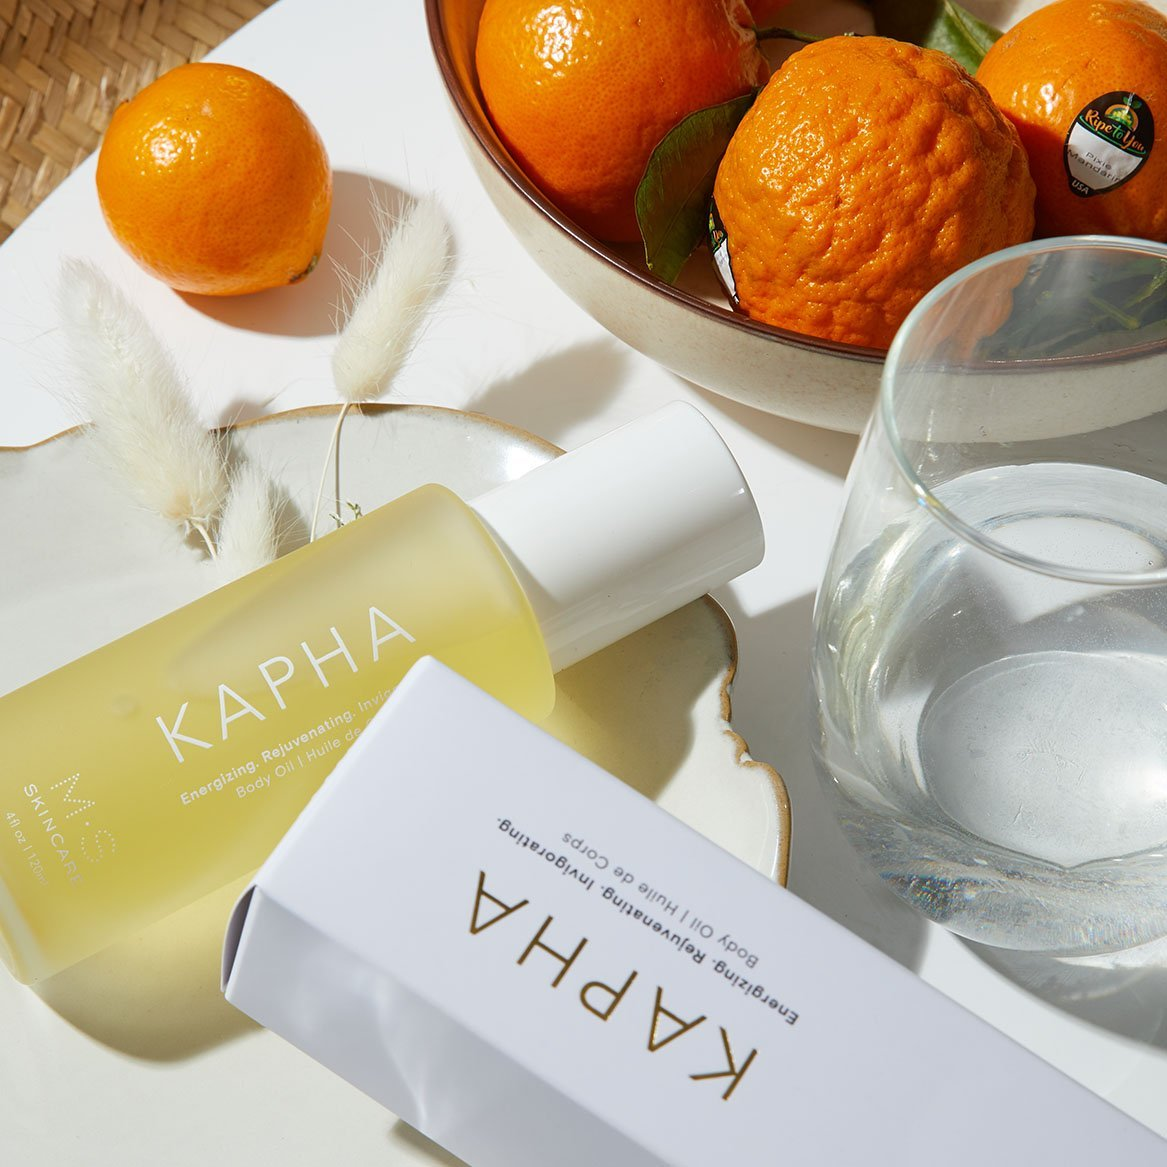 KAPHA | Energizing Body Oil - Mullein and Sparrow